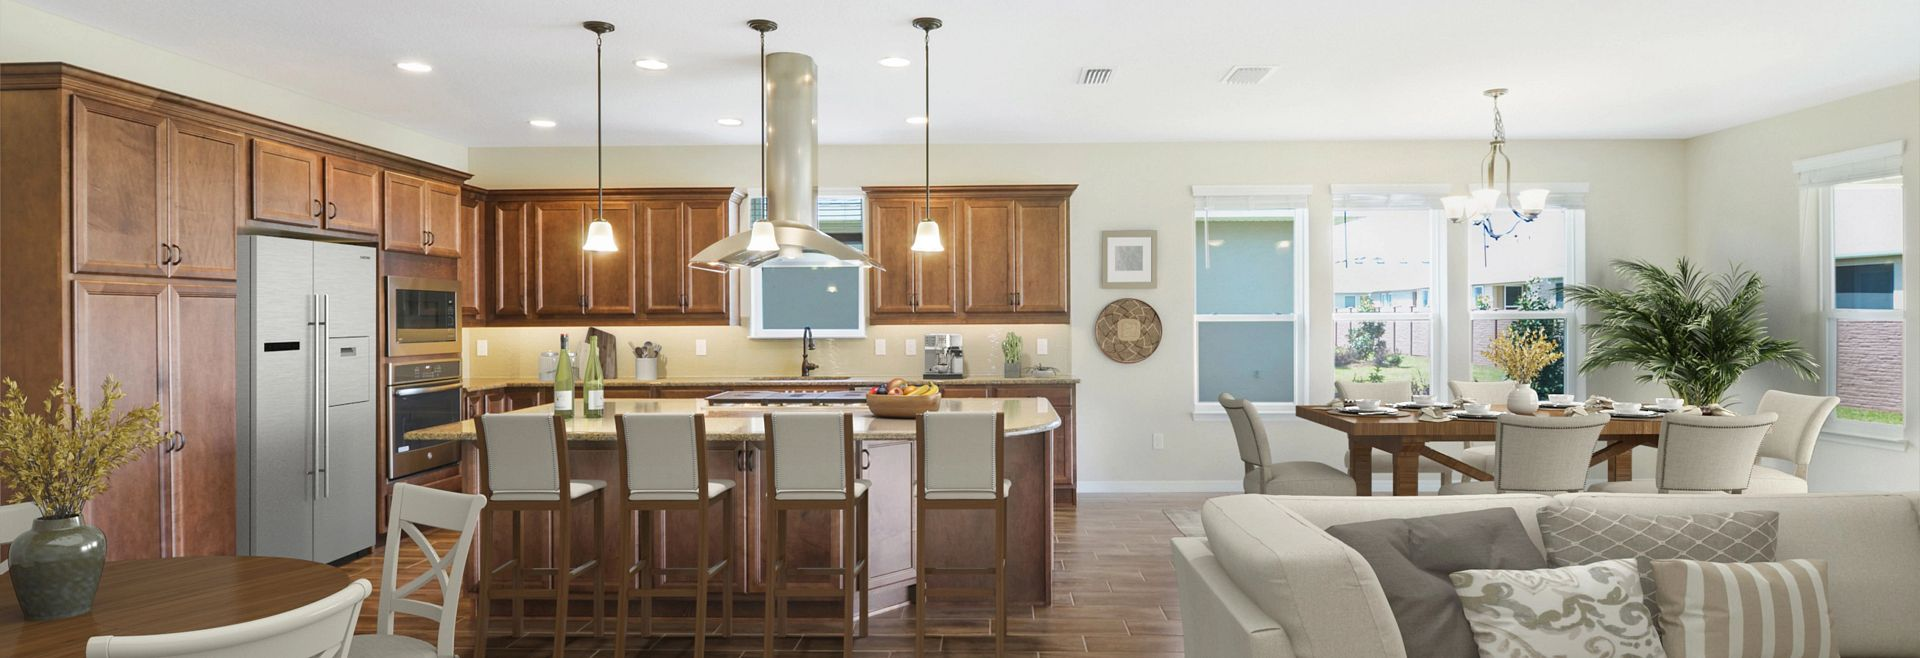 Trilogy at Ocala Preserve Quick Move In Home Virtually Staged Great Room